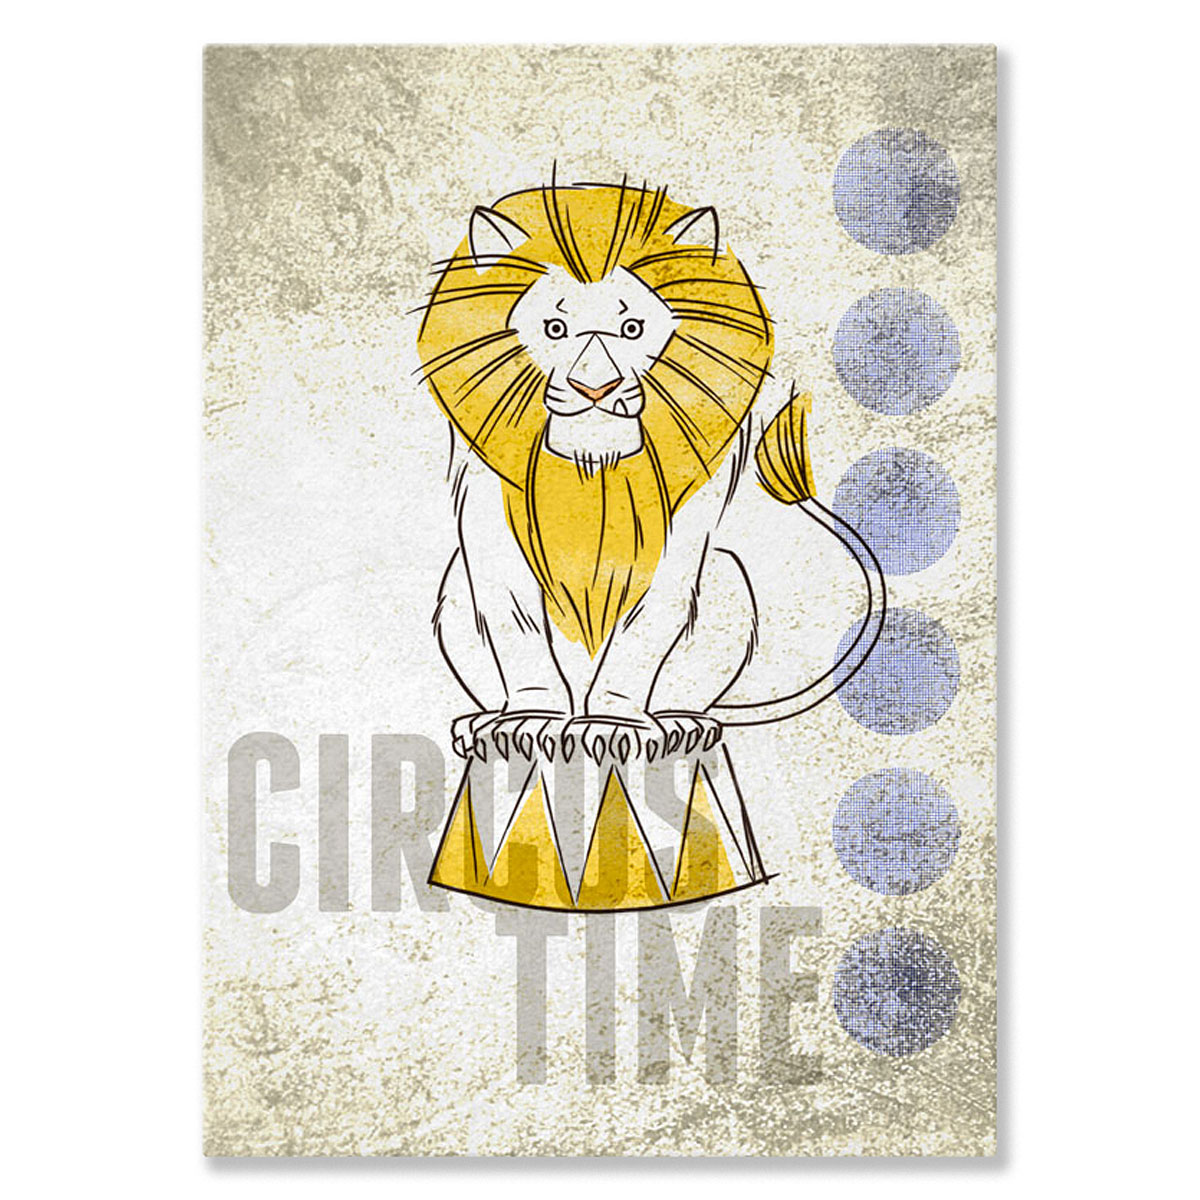 Oopsy Daisy - Canvas Wall Art Big Top Lion 10x14 By Fancy That Design House & Co